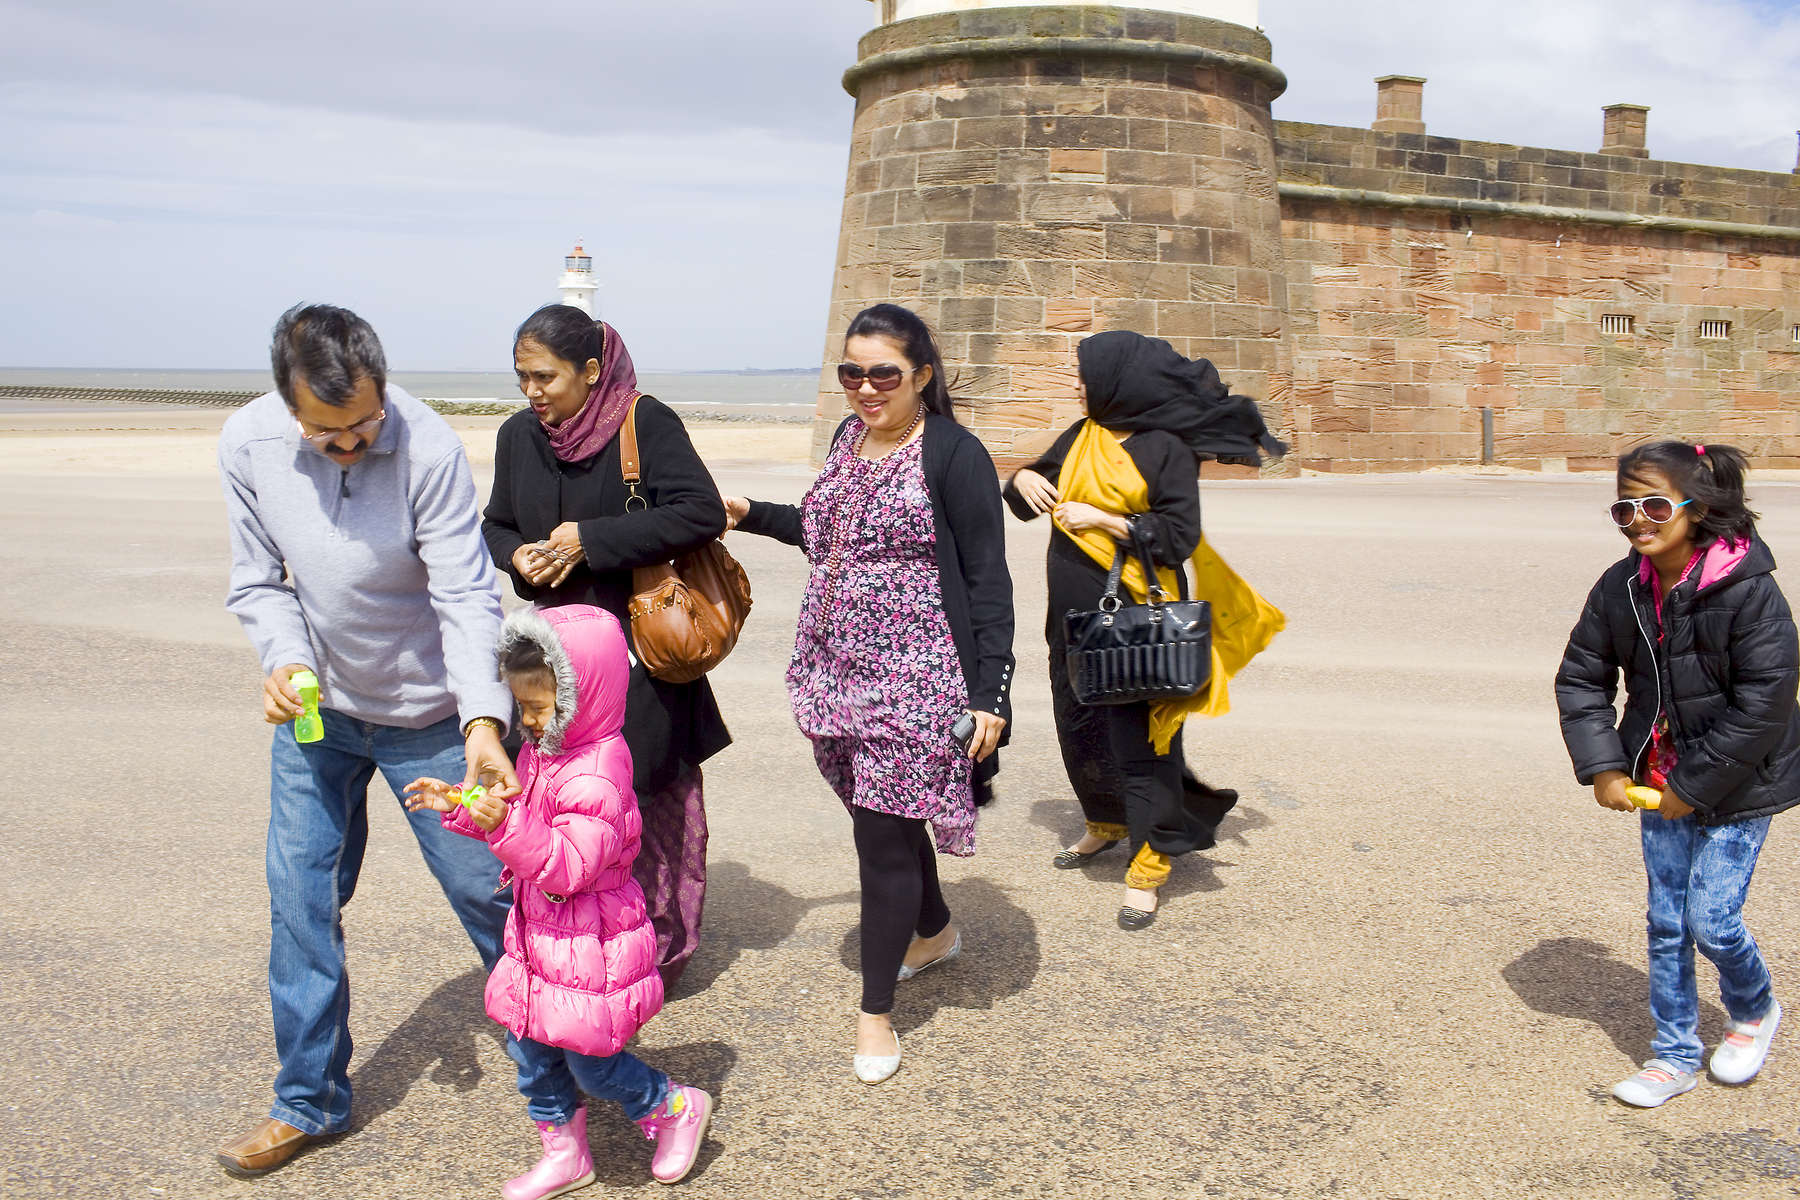 An Asian family take a walk near Fort Perch Rock, New Brighton. In 1986, world famous photographer Martin Parr published his book 'The Last Resort,' a set of photographs taken over three seasons 1983-85 in the Liverpool suburb of New Brighton. 25 years later, photographer and Parr fan, Peter Dench, went on a Bank Holiday pilgrimage to New Brighton to walk in Parr's footsteps and document what has changed or remained the same in the seaside town.